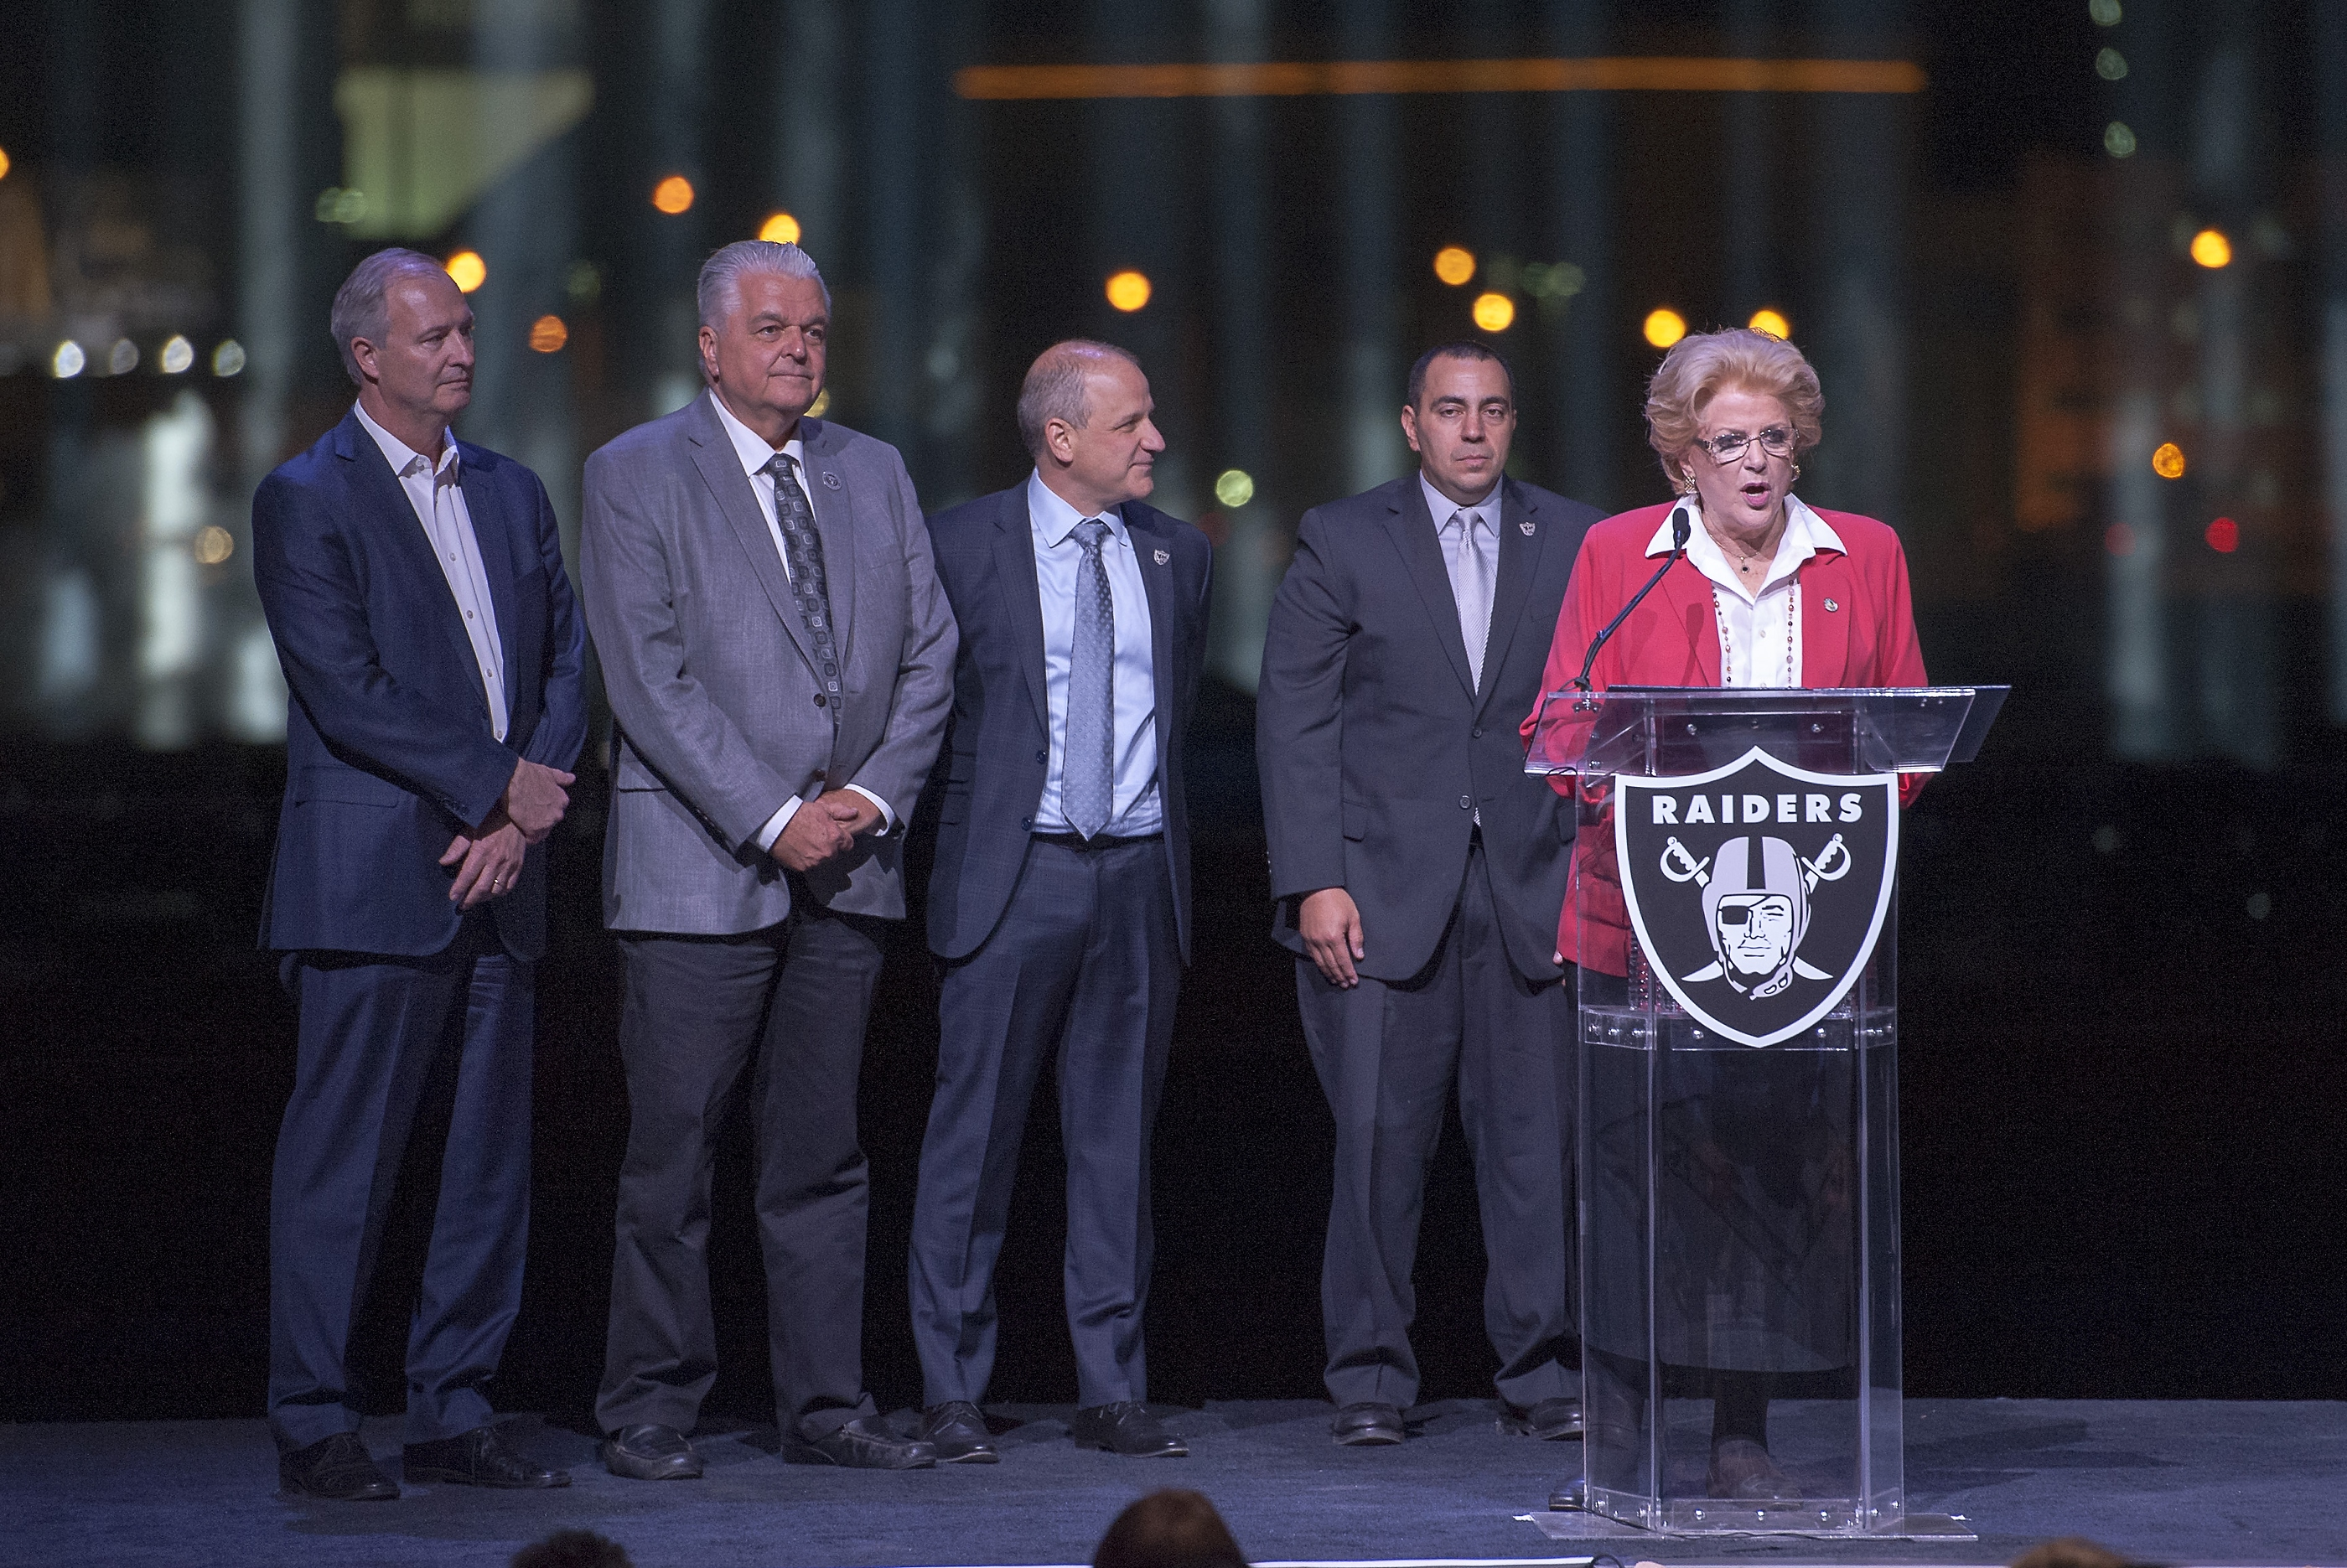 Las Vegas Masyor Carolyn G. Goodman, right, speaks at the groundbreaking ceremony for the Raiders Las Vegas Stadium at the Polaris Avenue site in Las Vegas on Monday, Nov. 13, 2017. Also on stage, from left, are Steve Hill, executive  director of the Nevada Governor's Office of Economic Development, Clark County Commissioner Steve Sisolak, Oakland Raiders President Marc Badain, and Oakland Raiders Legal Counsel Dan Ventrelle. CREDIT: Mark Damon/Las Vegas News Bureau